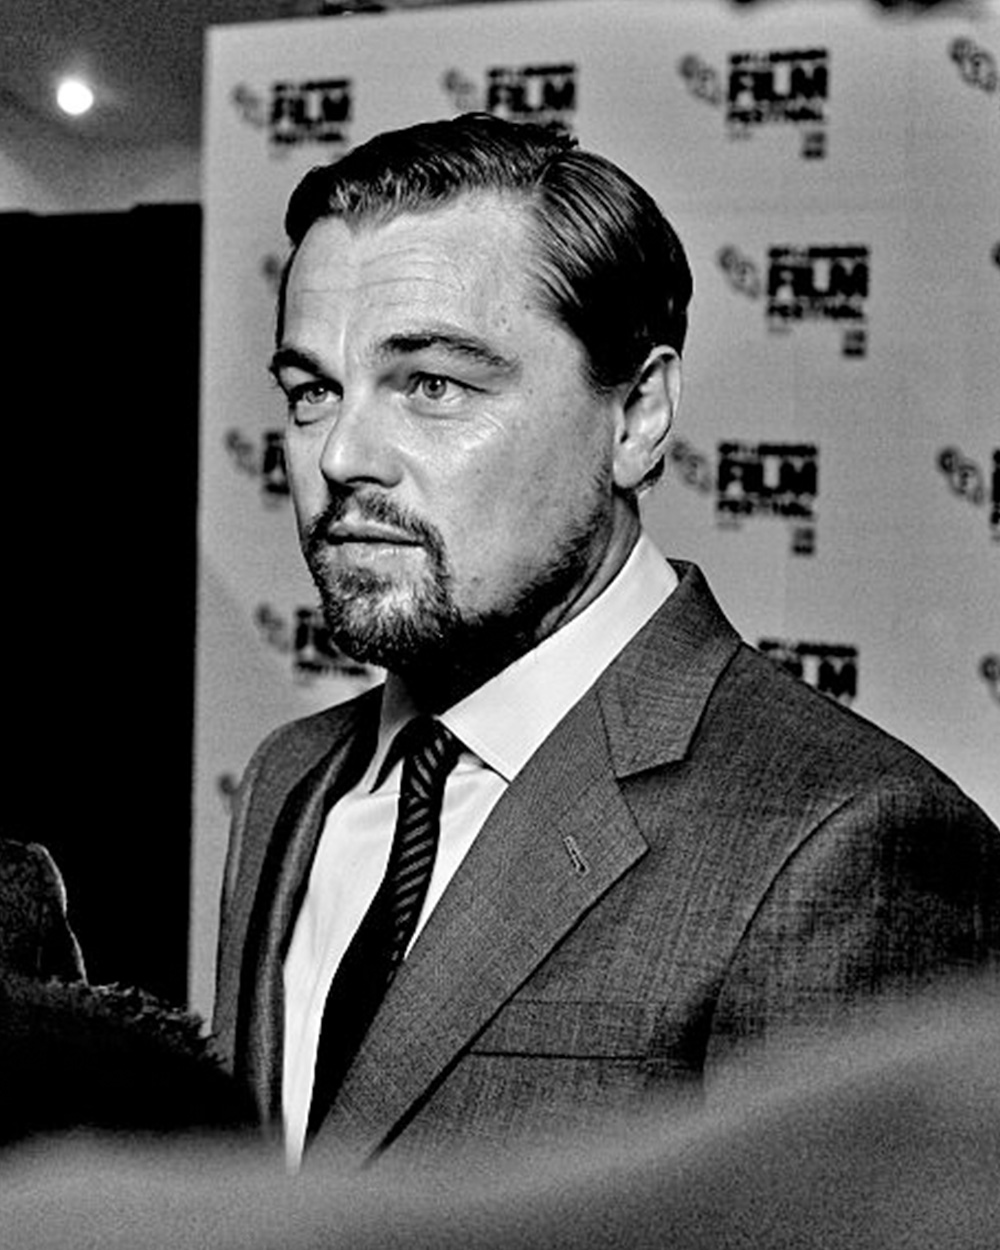 leo-dicaprio-home_featured-image-1000x1250